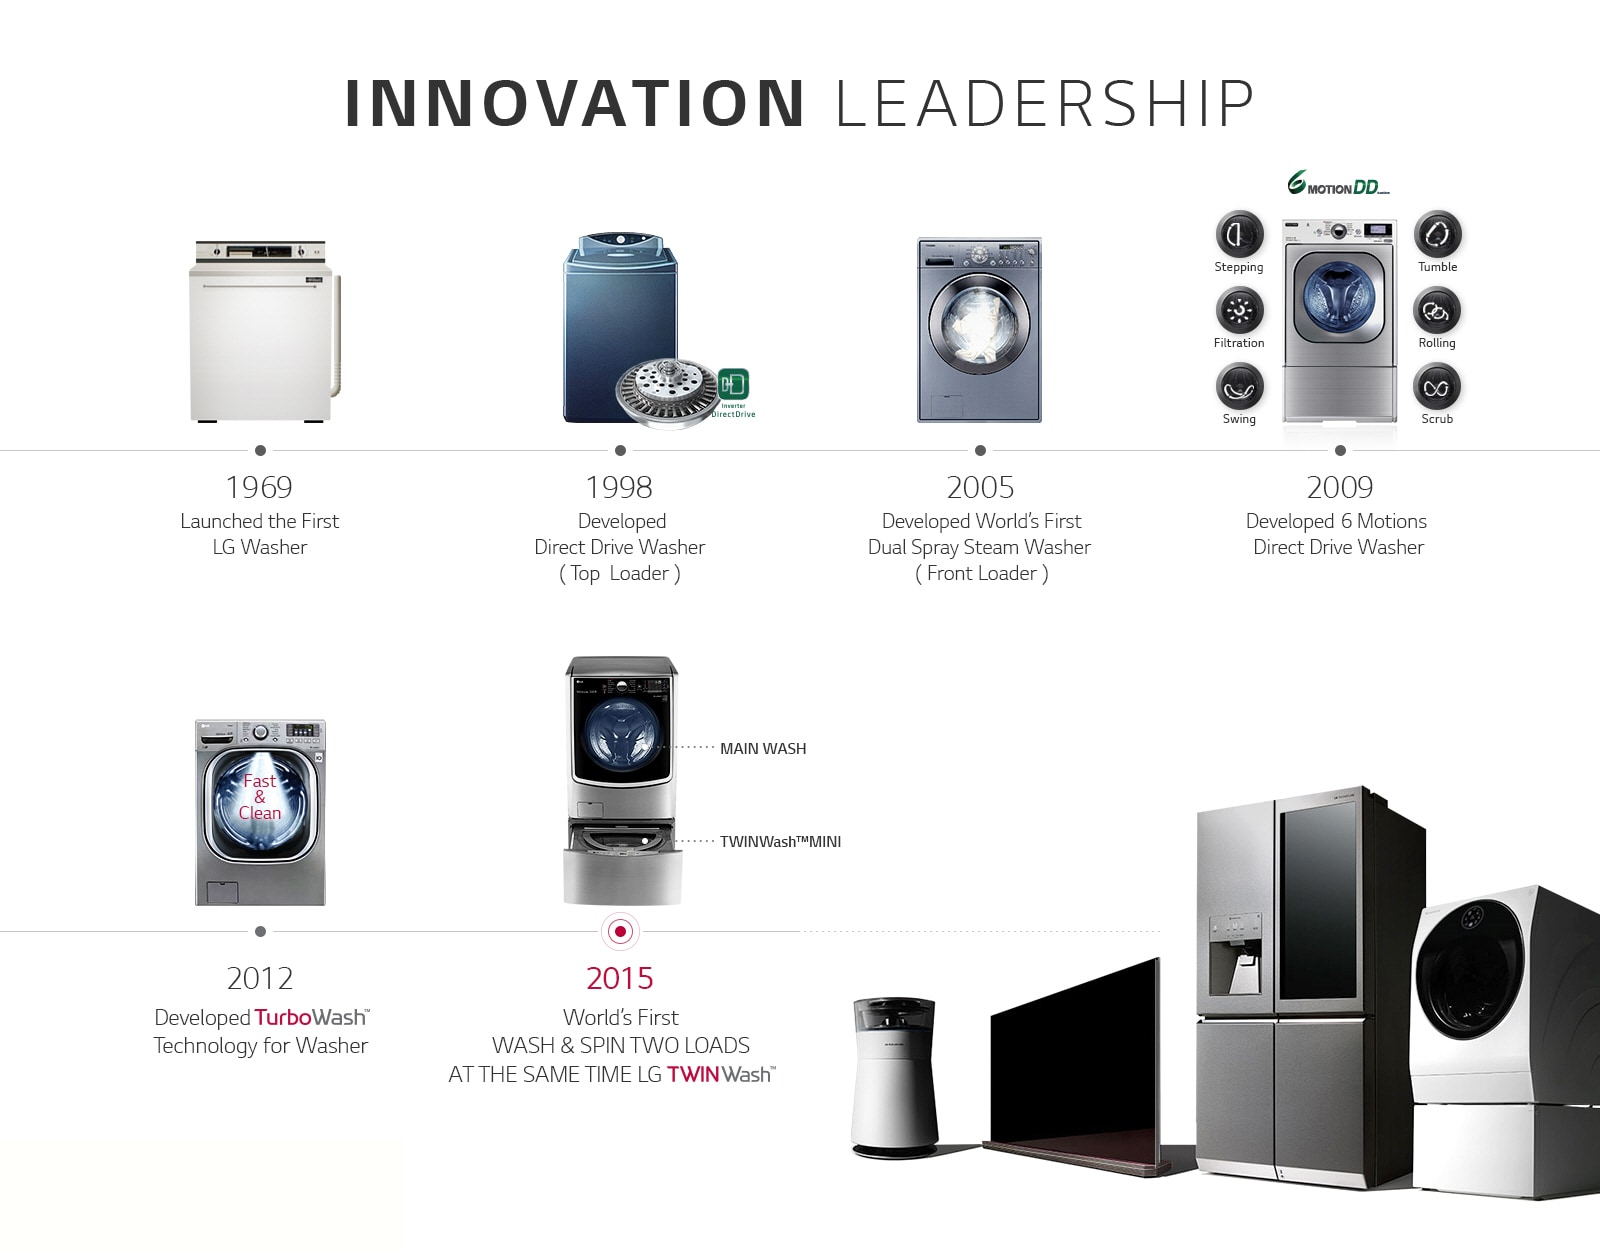 LG washing machines - Innovation Leadership